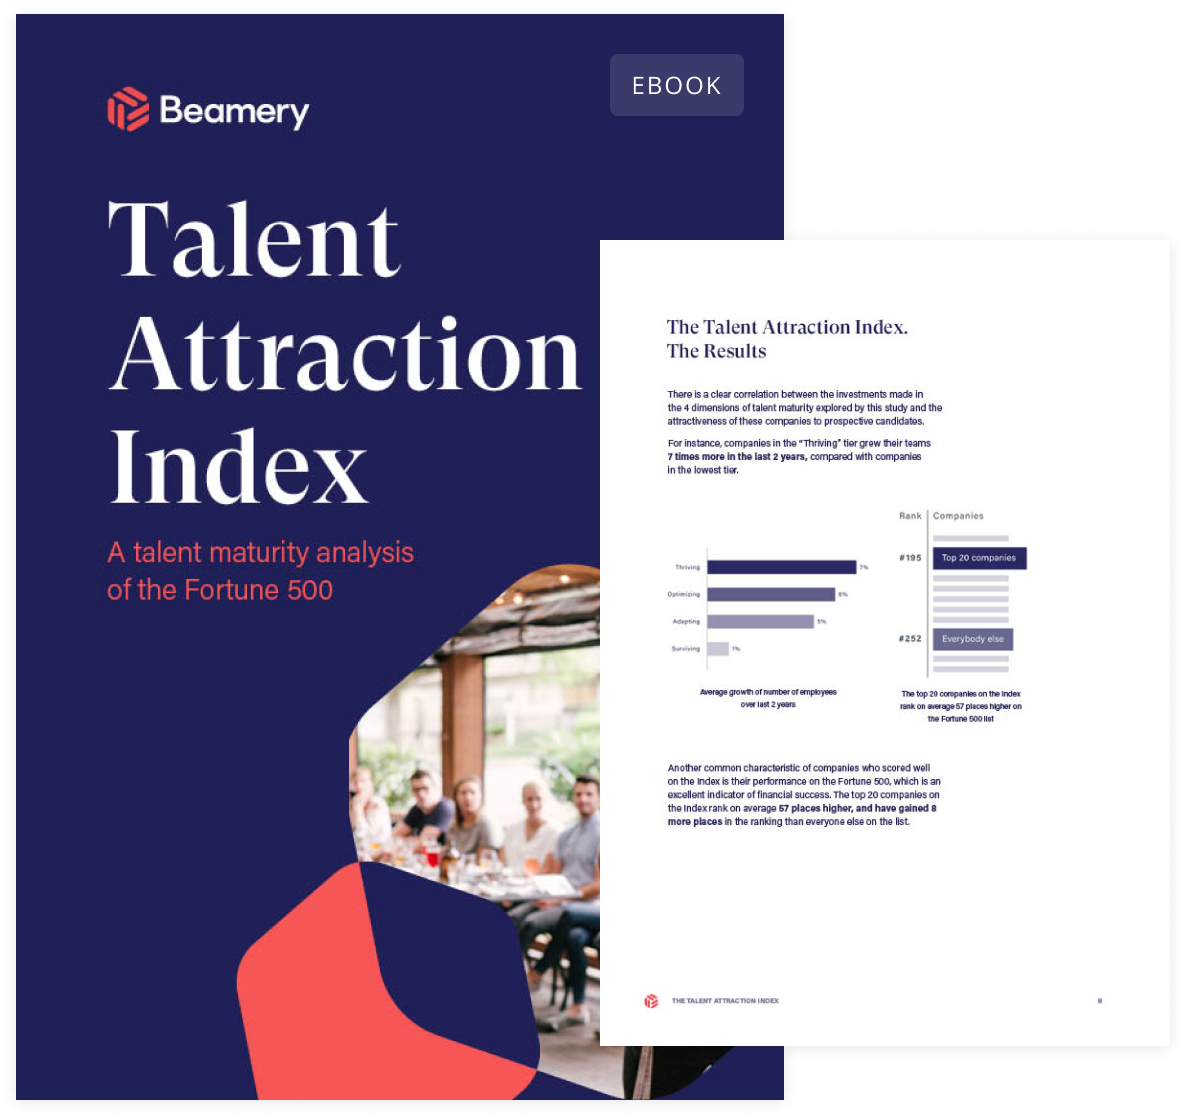 The Talent Attraction Index: A Talent Maturity Analysis of the Fortune 500